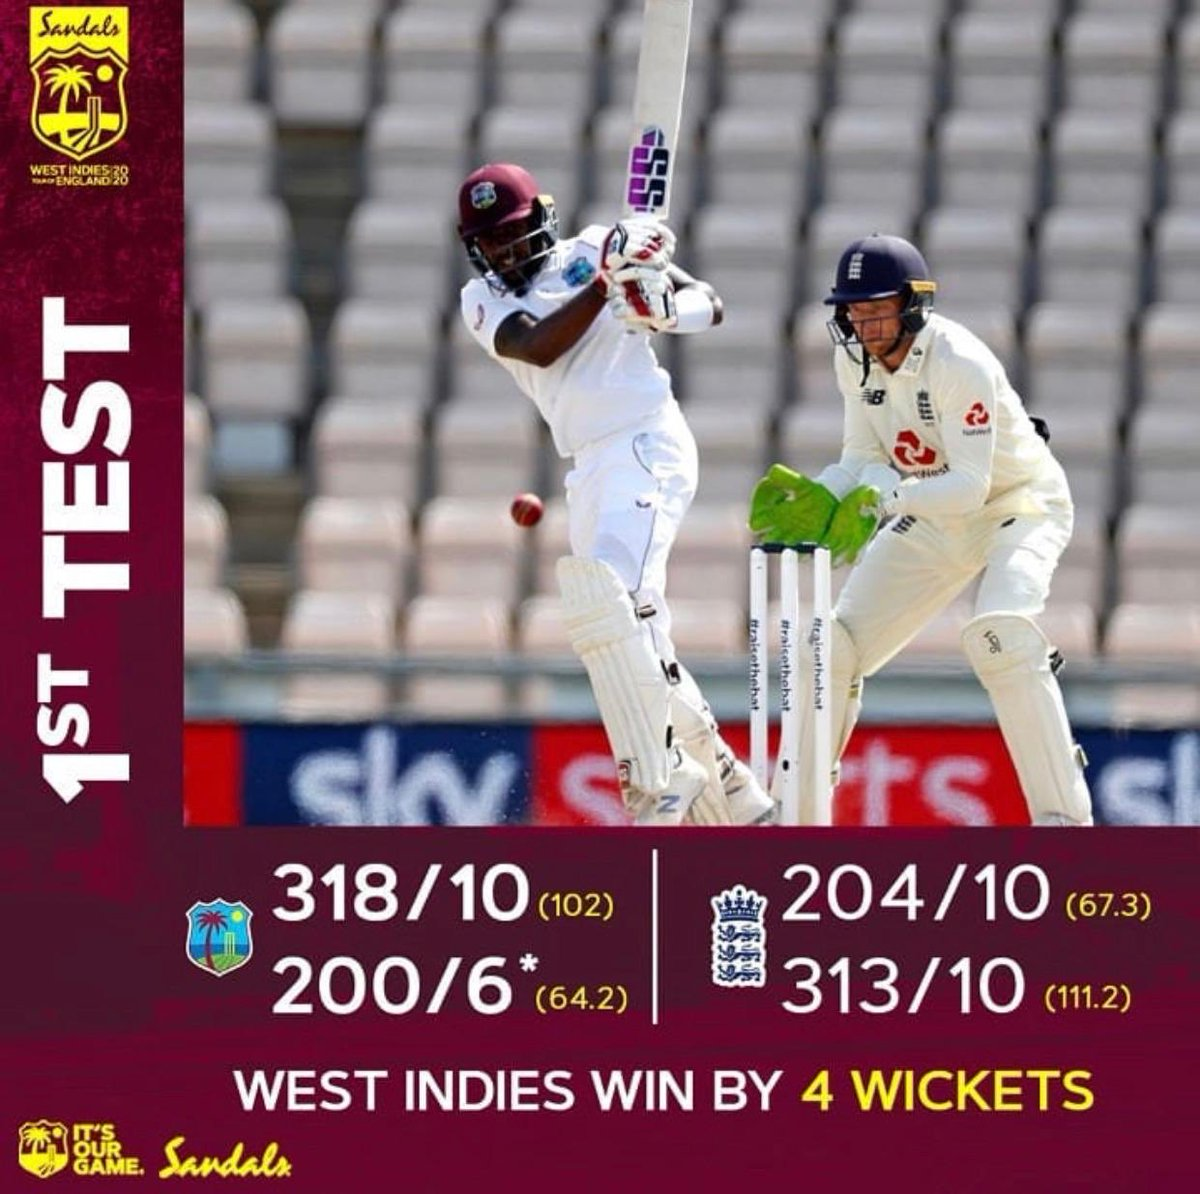 Congratulations !! Well done to the entire team Captain Jason Holder and coach Phil Simmons